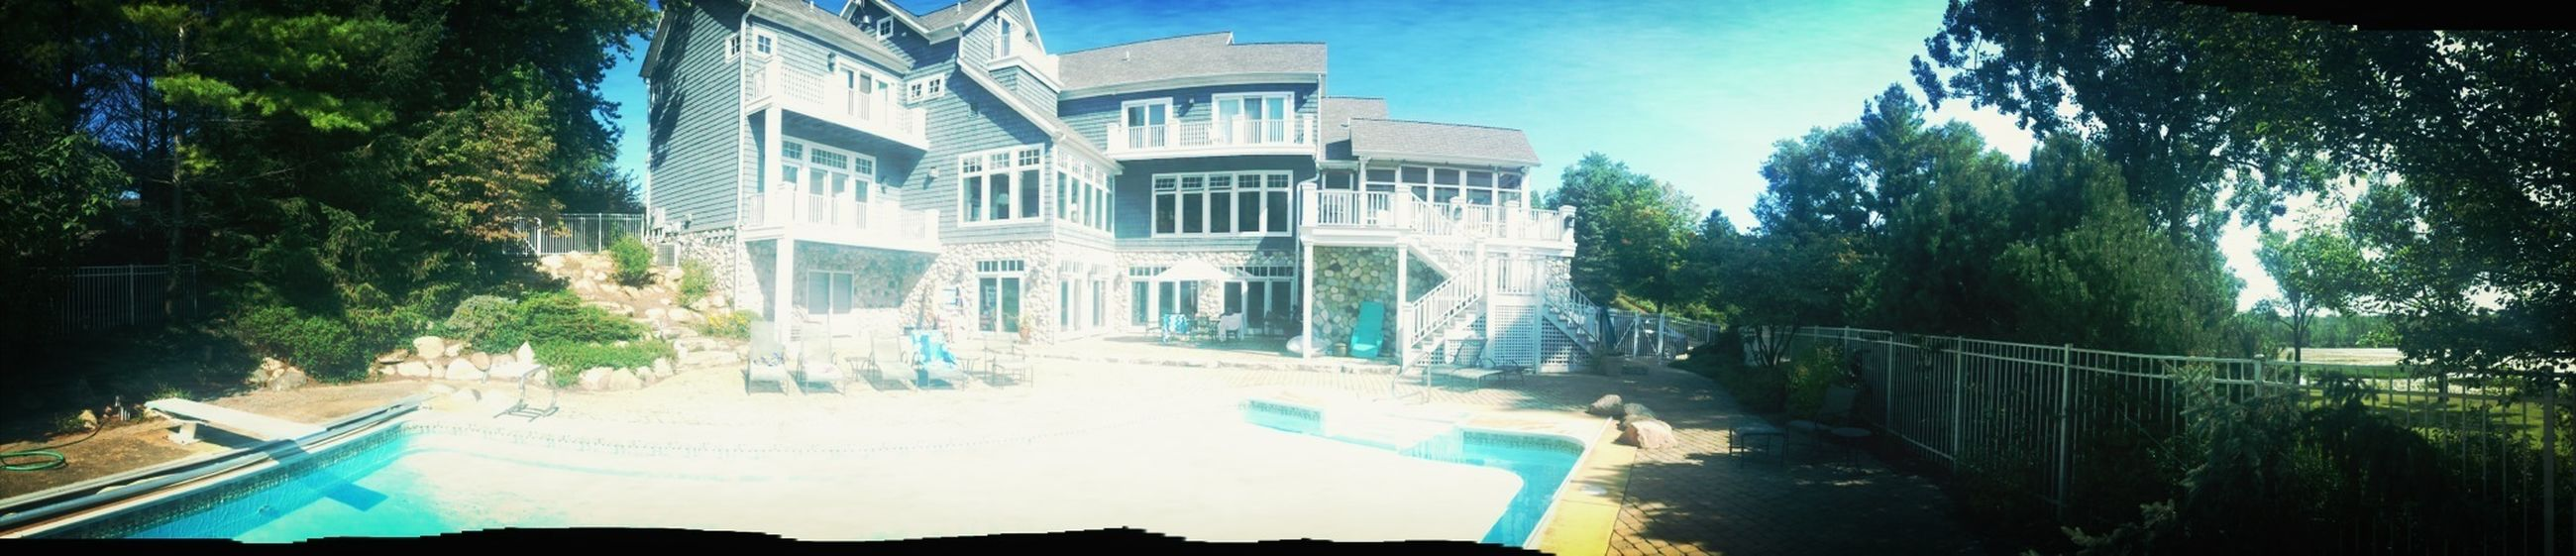 BeachHouse Vacation Summer Love Spending a few more days here